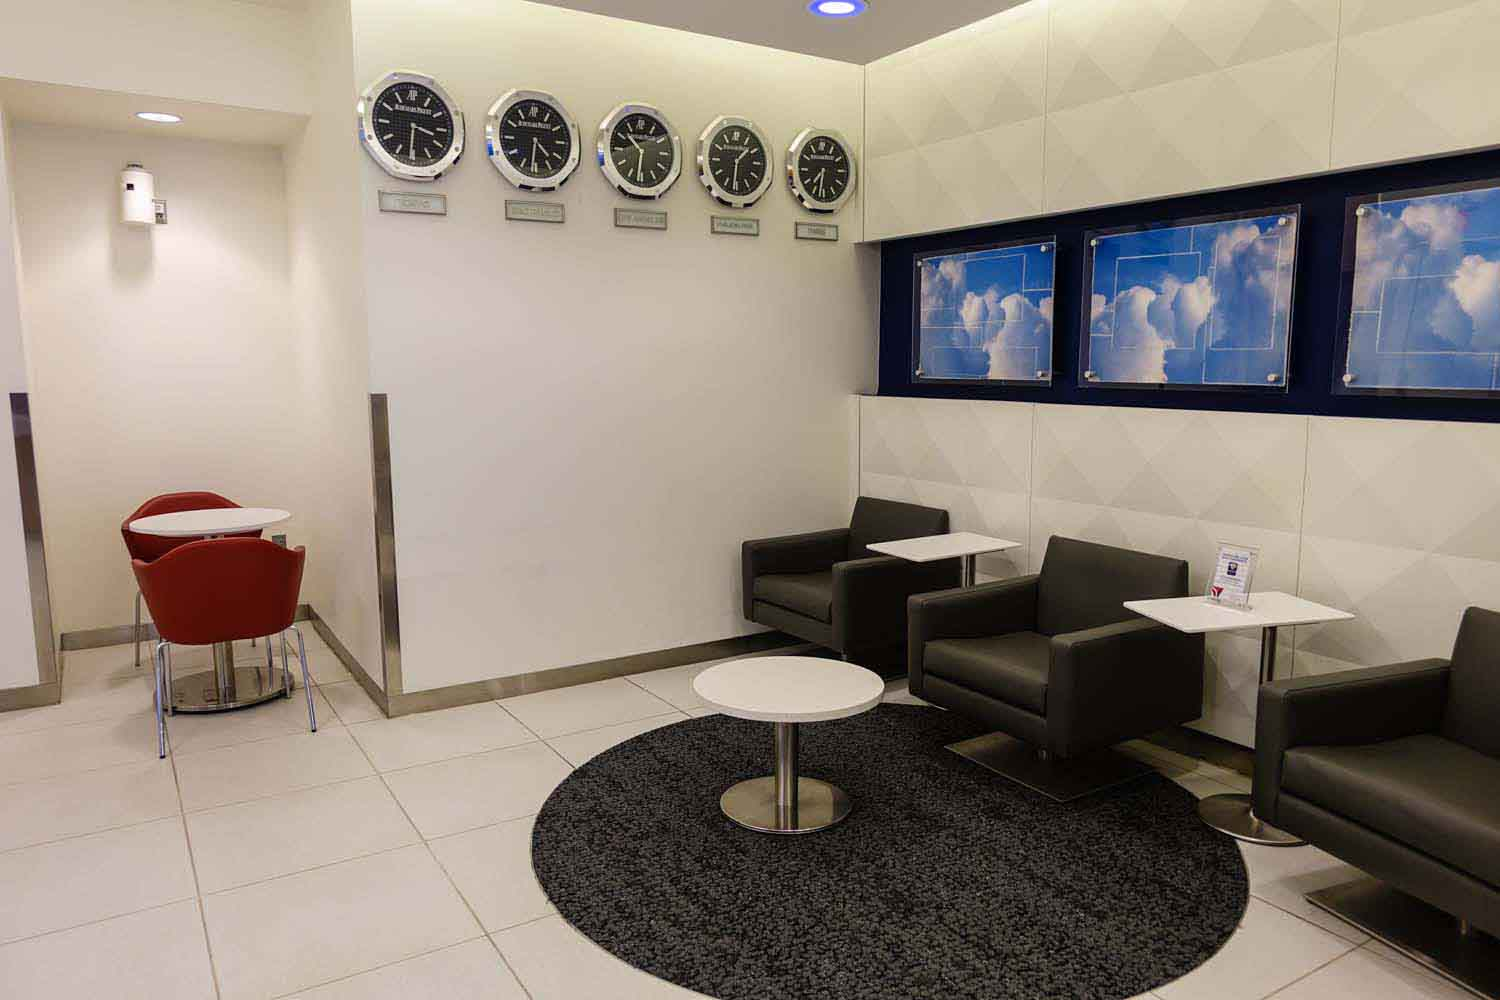 A seating area at the Delta Sky Club at Philadelphia airport